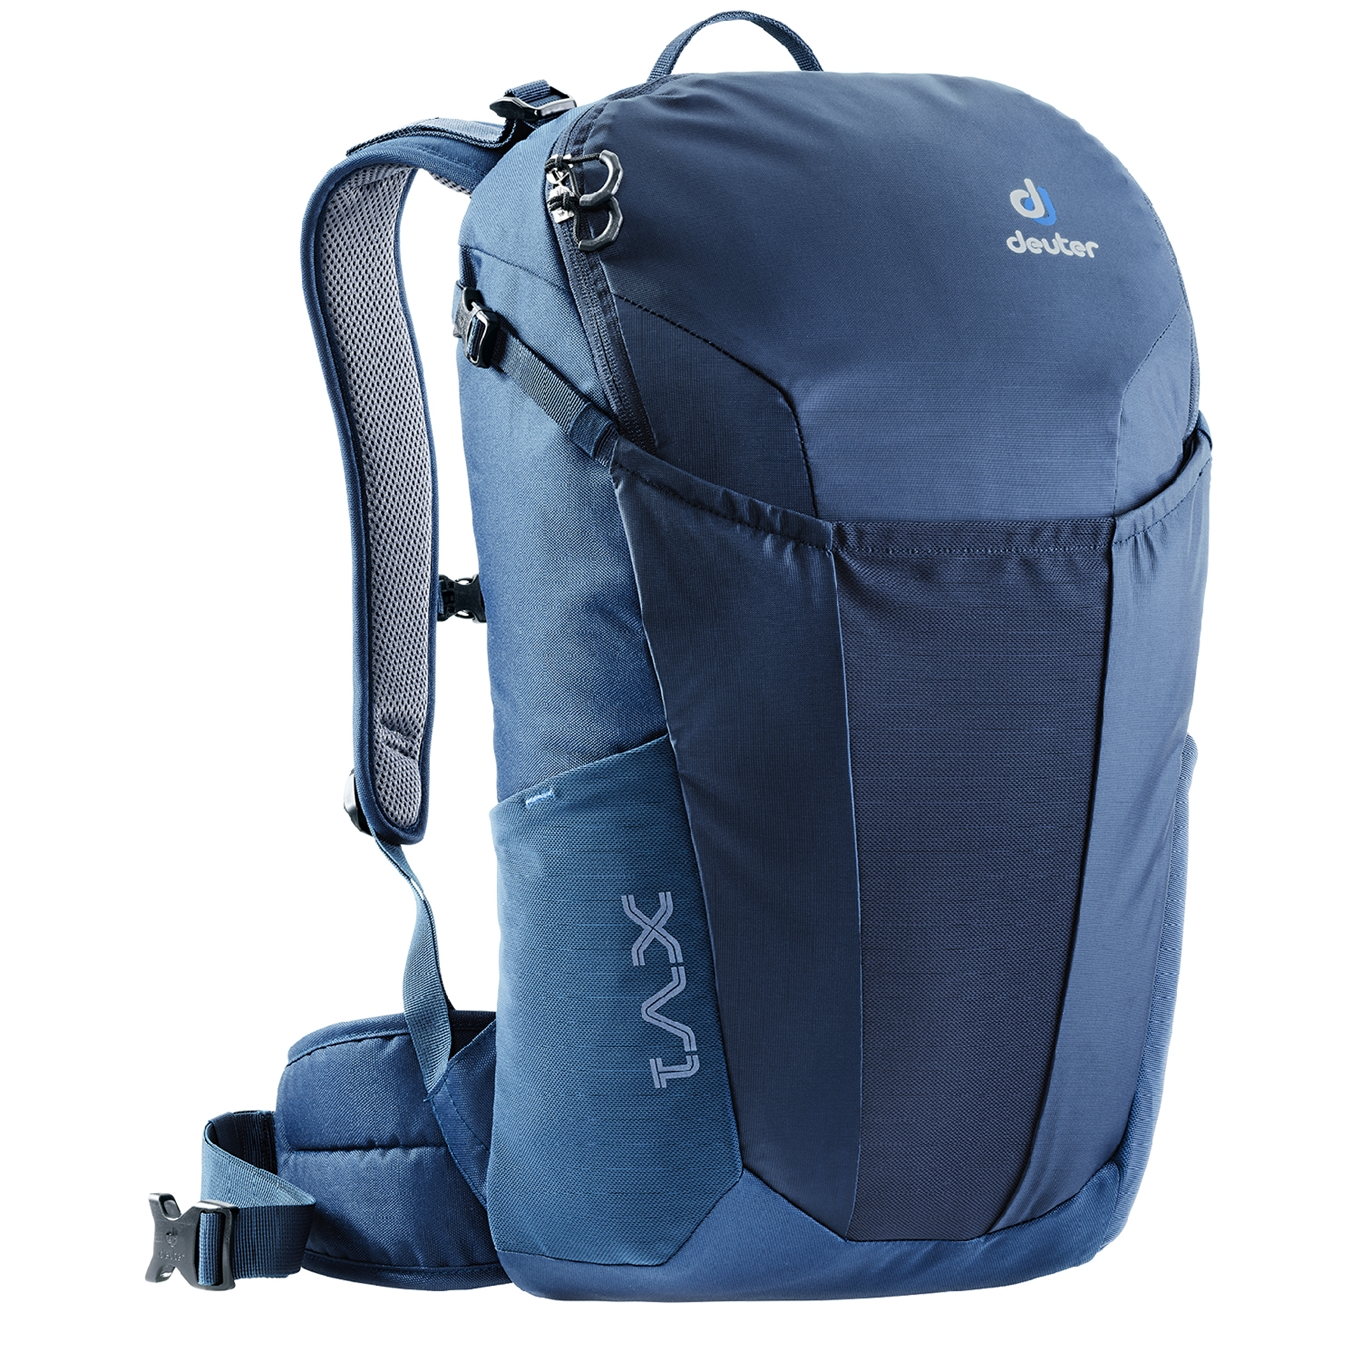 Deuter XV 1 Backpack navy / midnight backpack